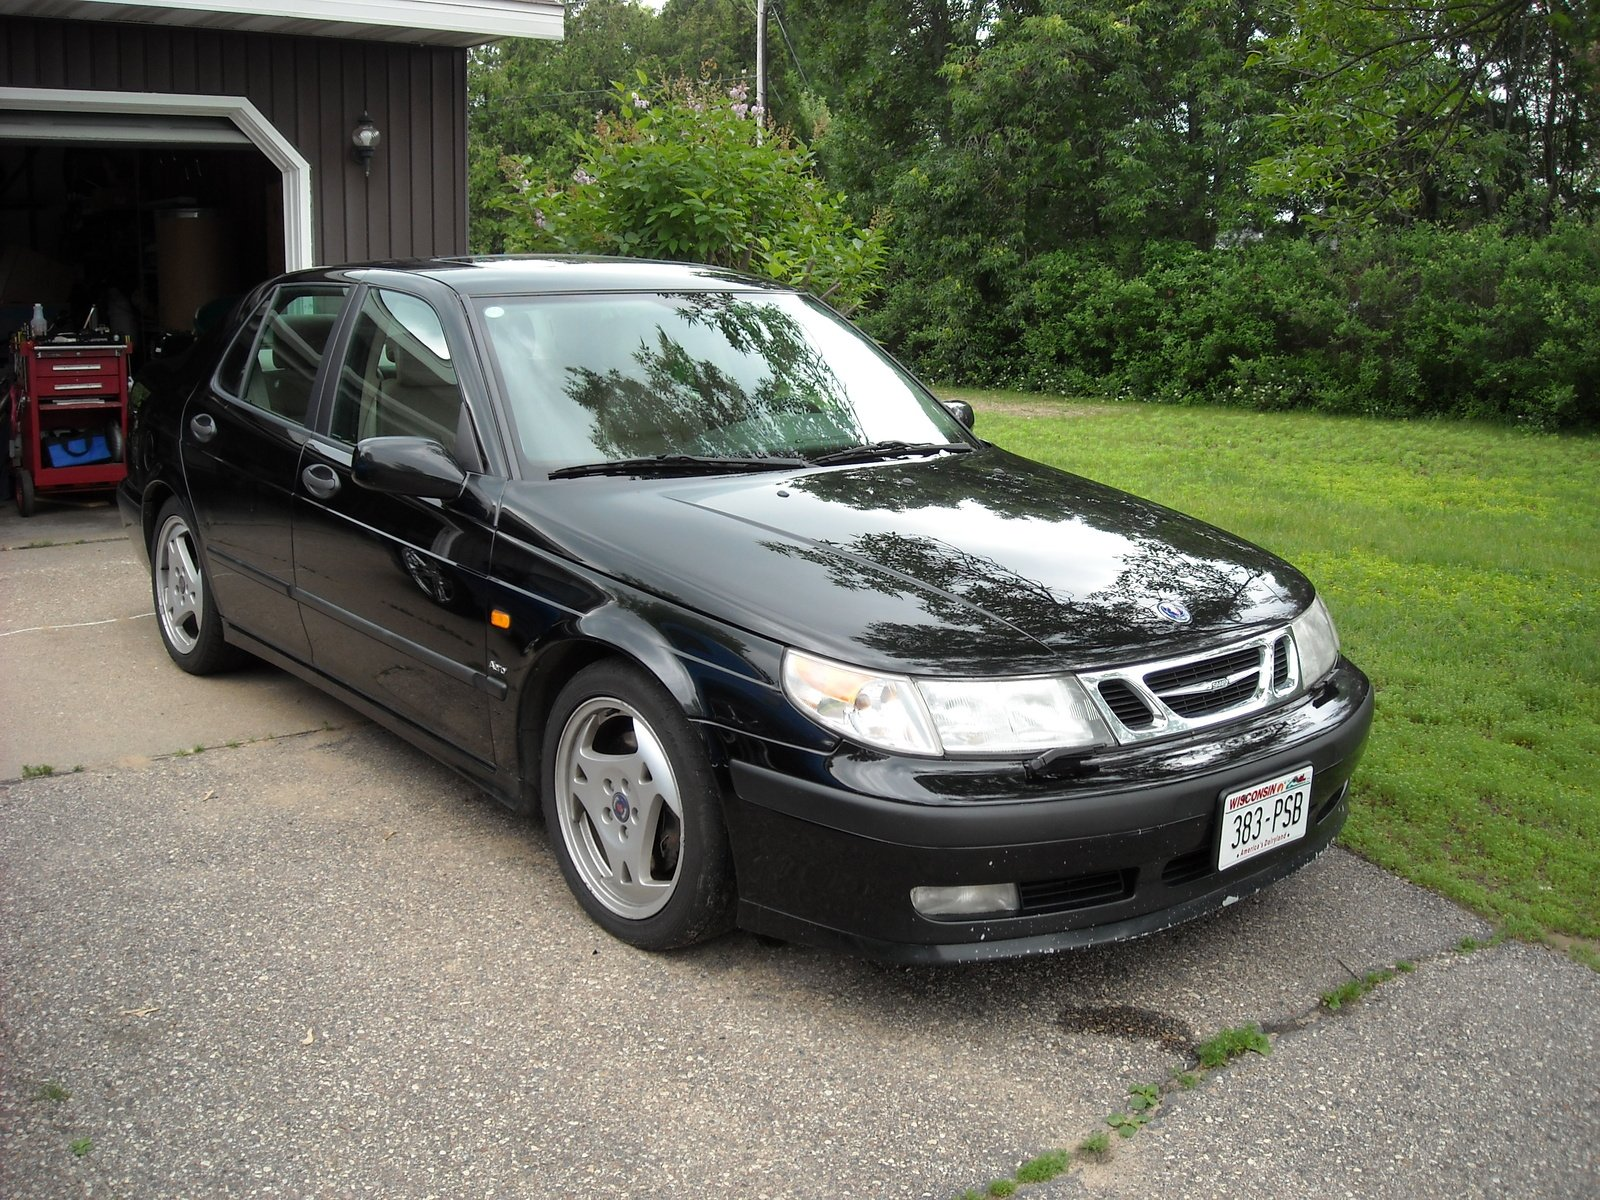 2001 saab 9 5 wagon pictures information and specs auto. Black Bedroom Furniture Sets. Home Design Ideas